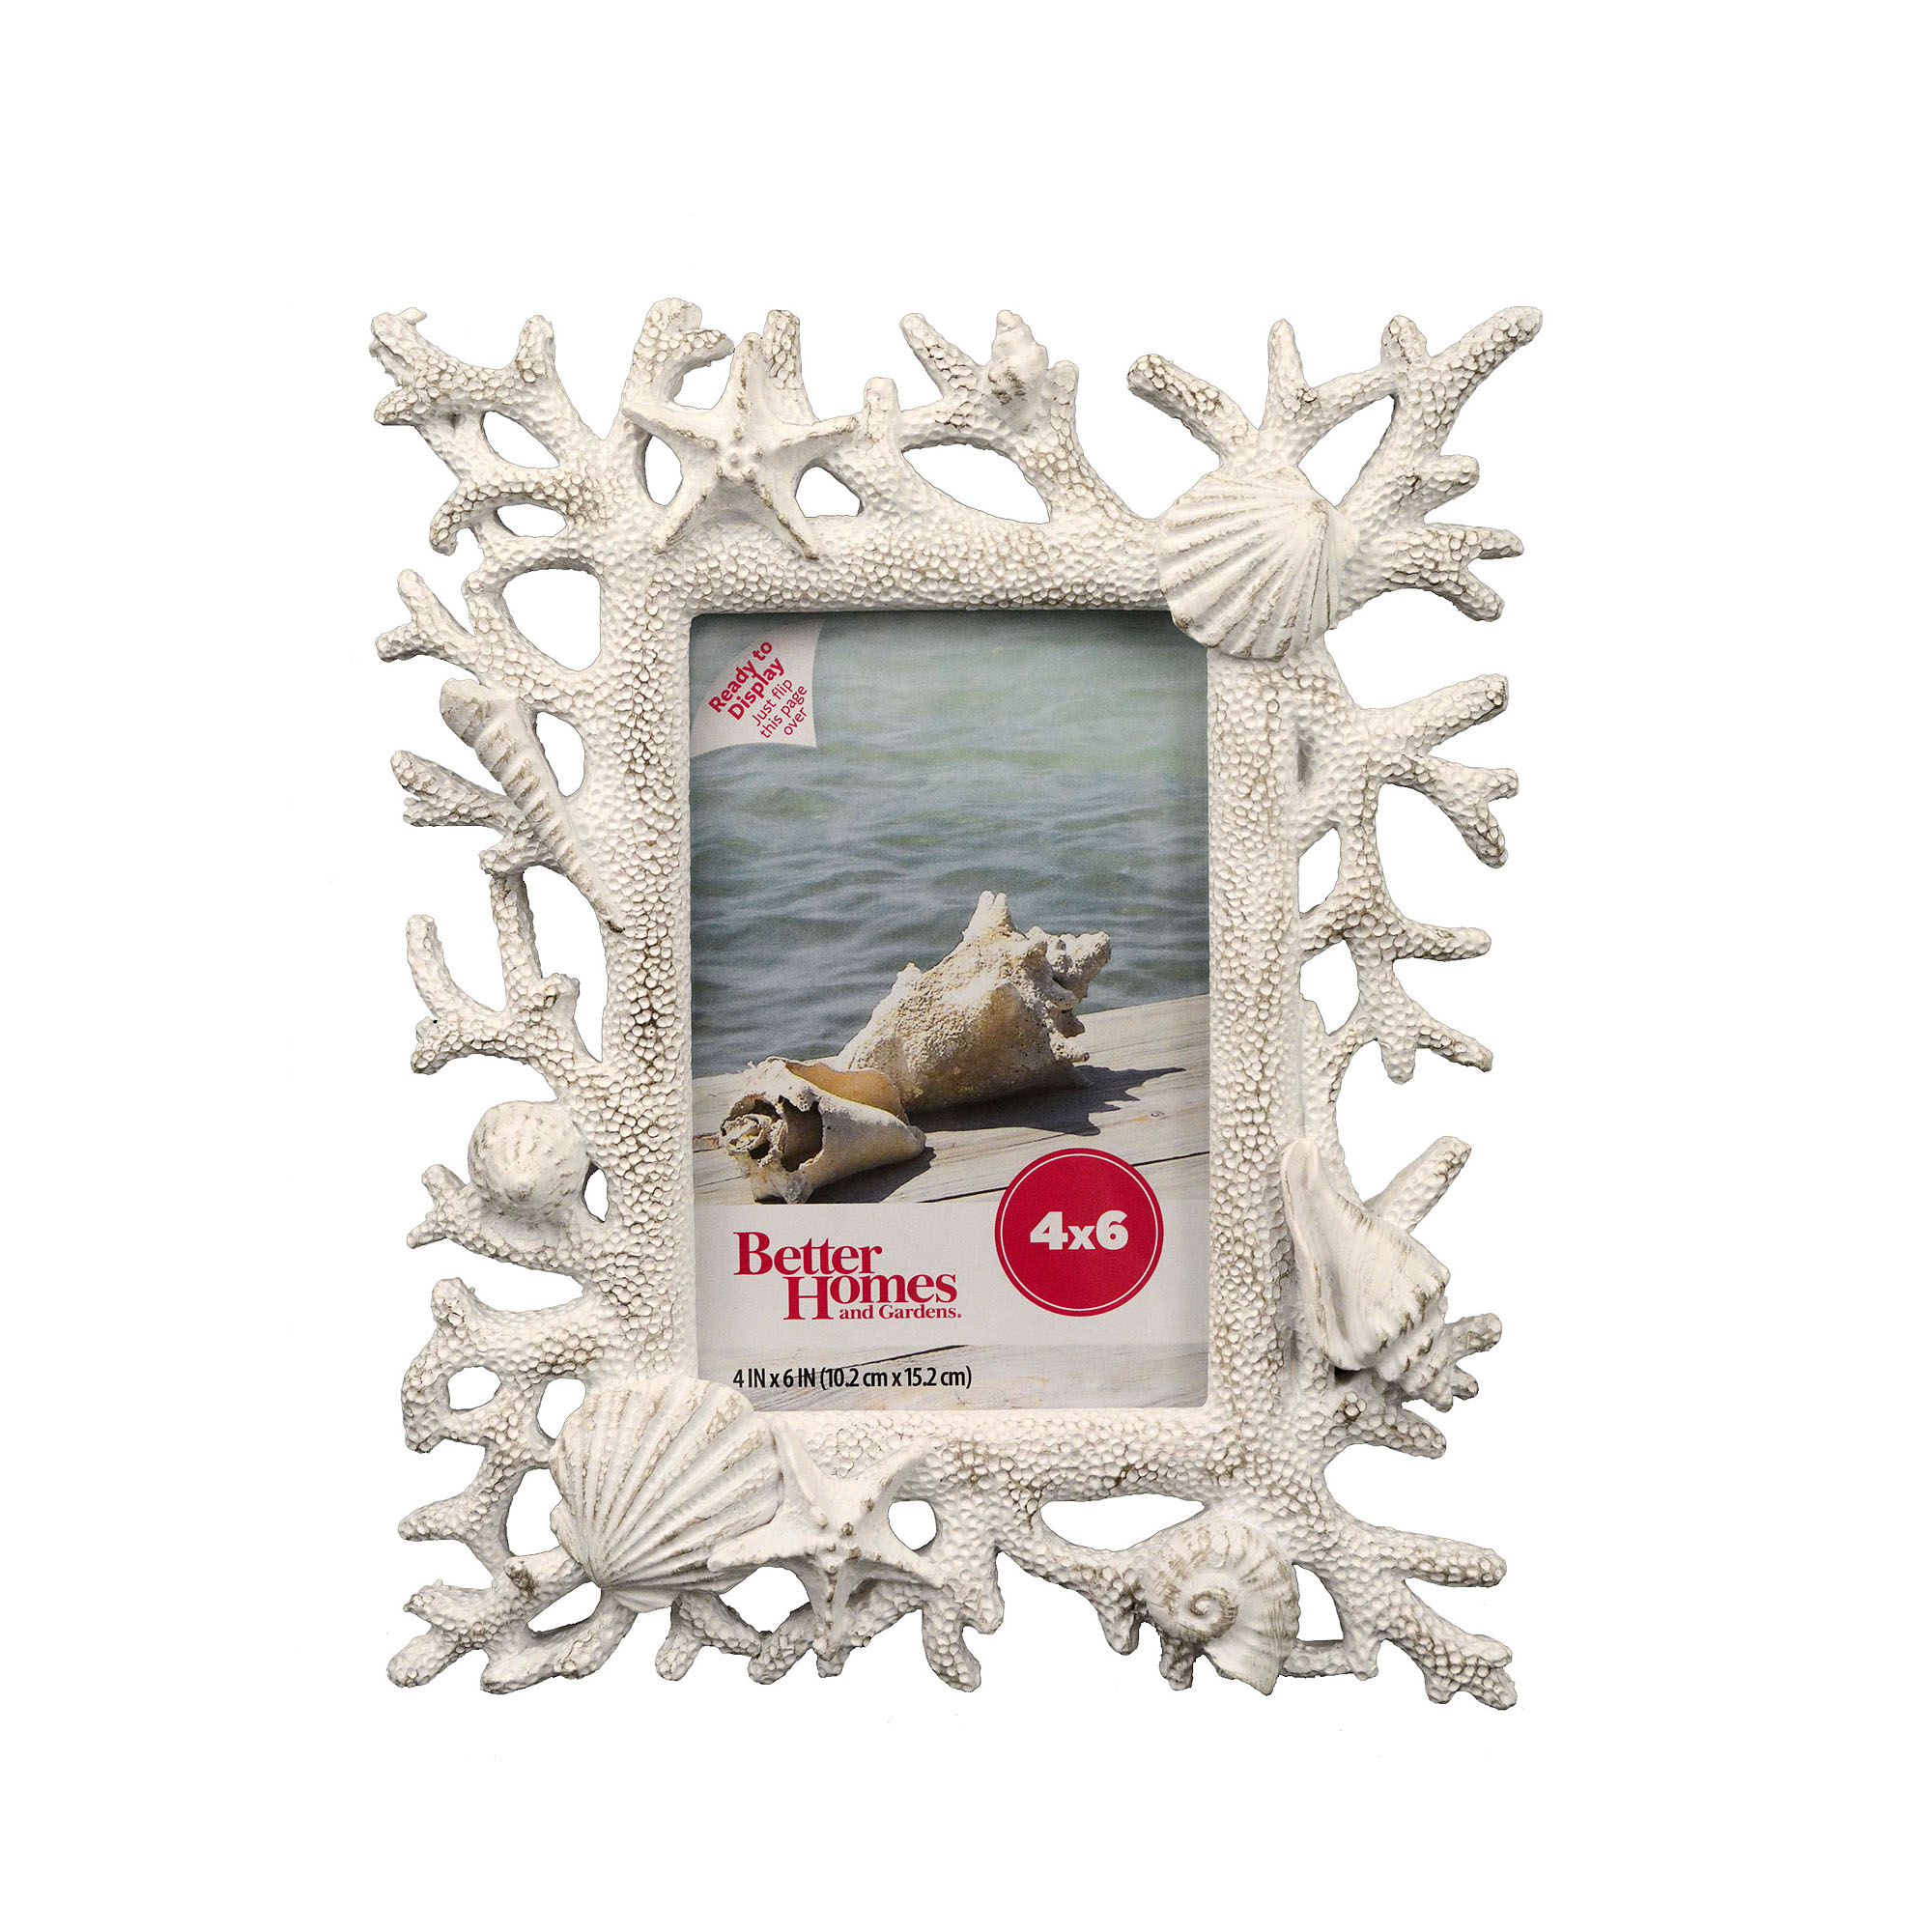 Better Homes and Gardens 4x6 Coastal Frame, Distressed White ...